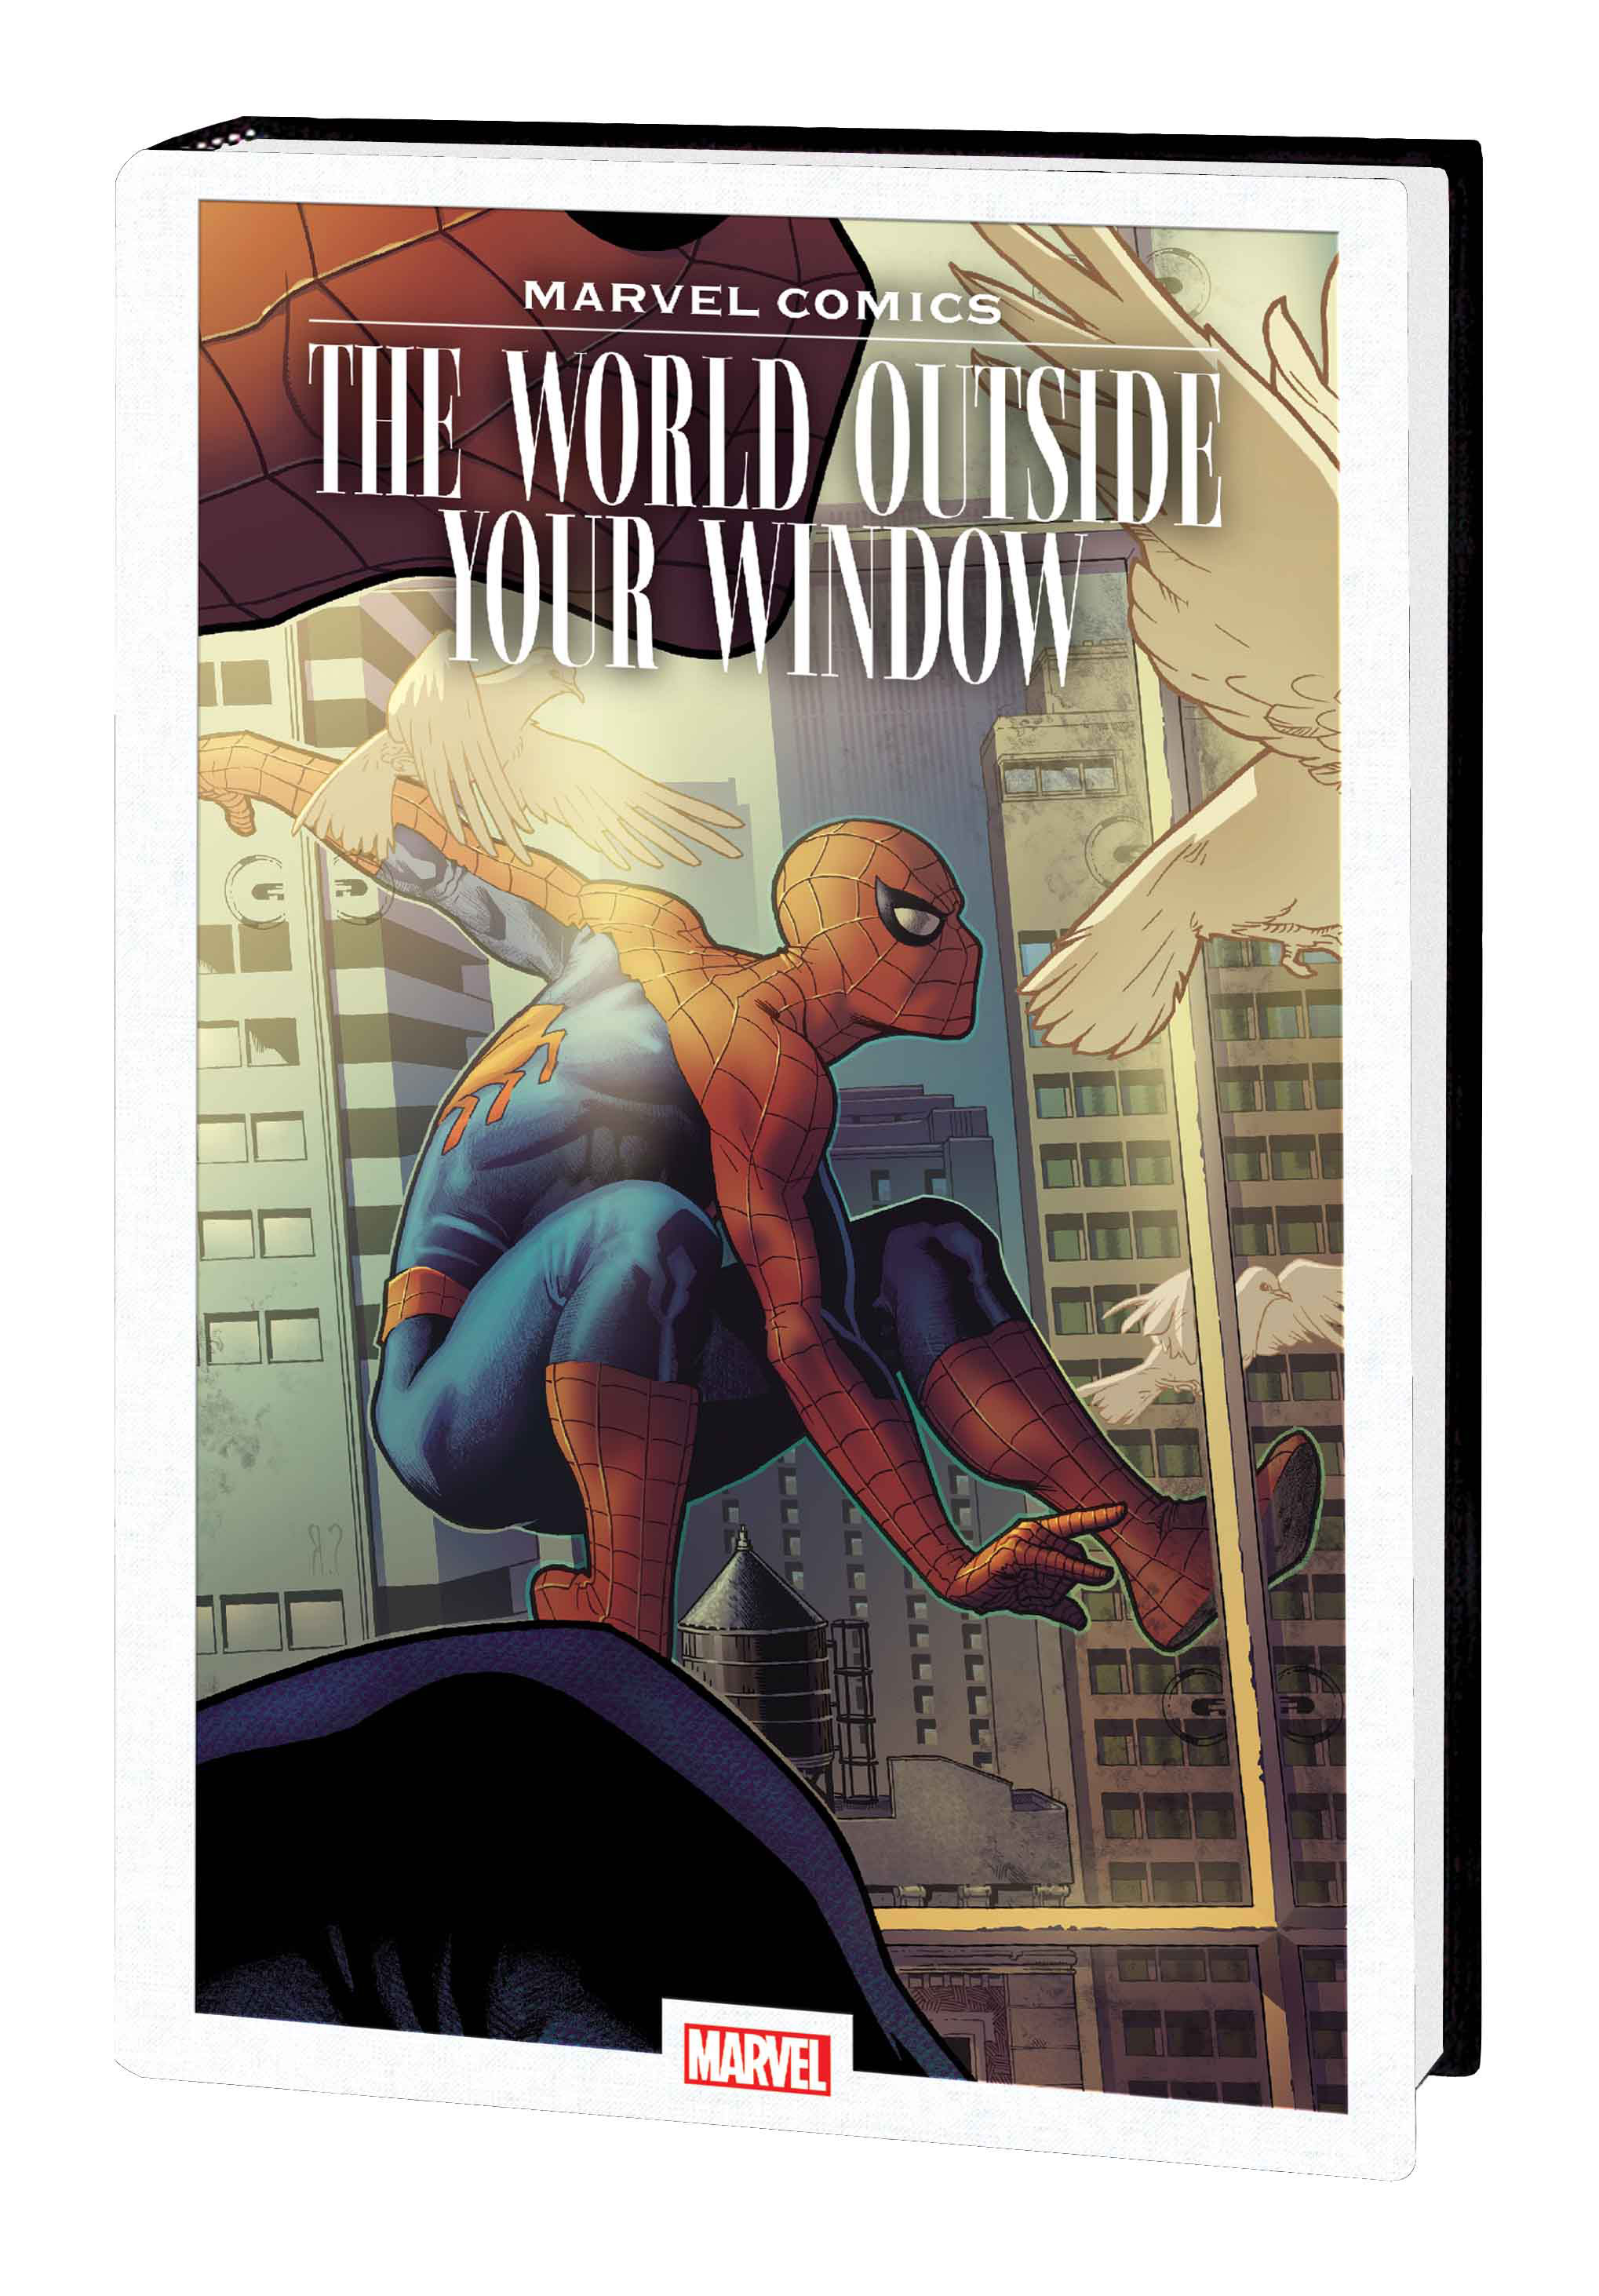 Marvel Comics showcases heroes in 'The World Outside Your Window' hardcover next June